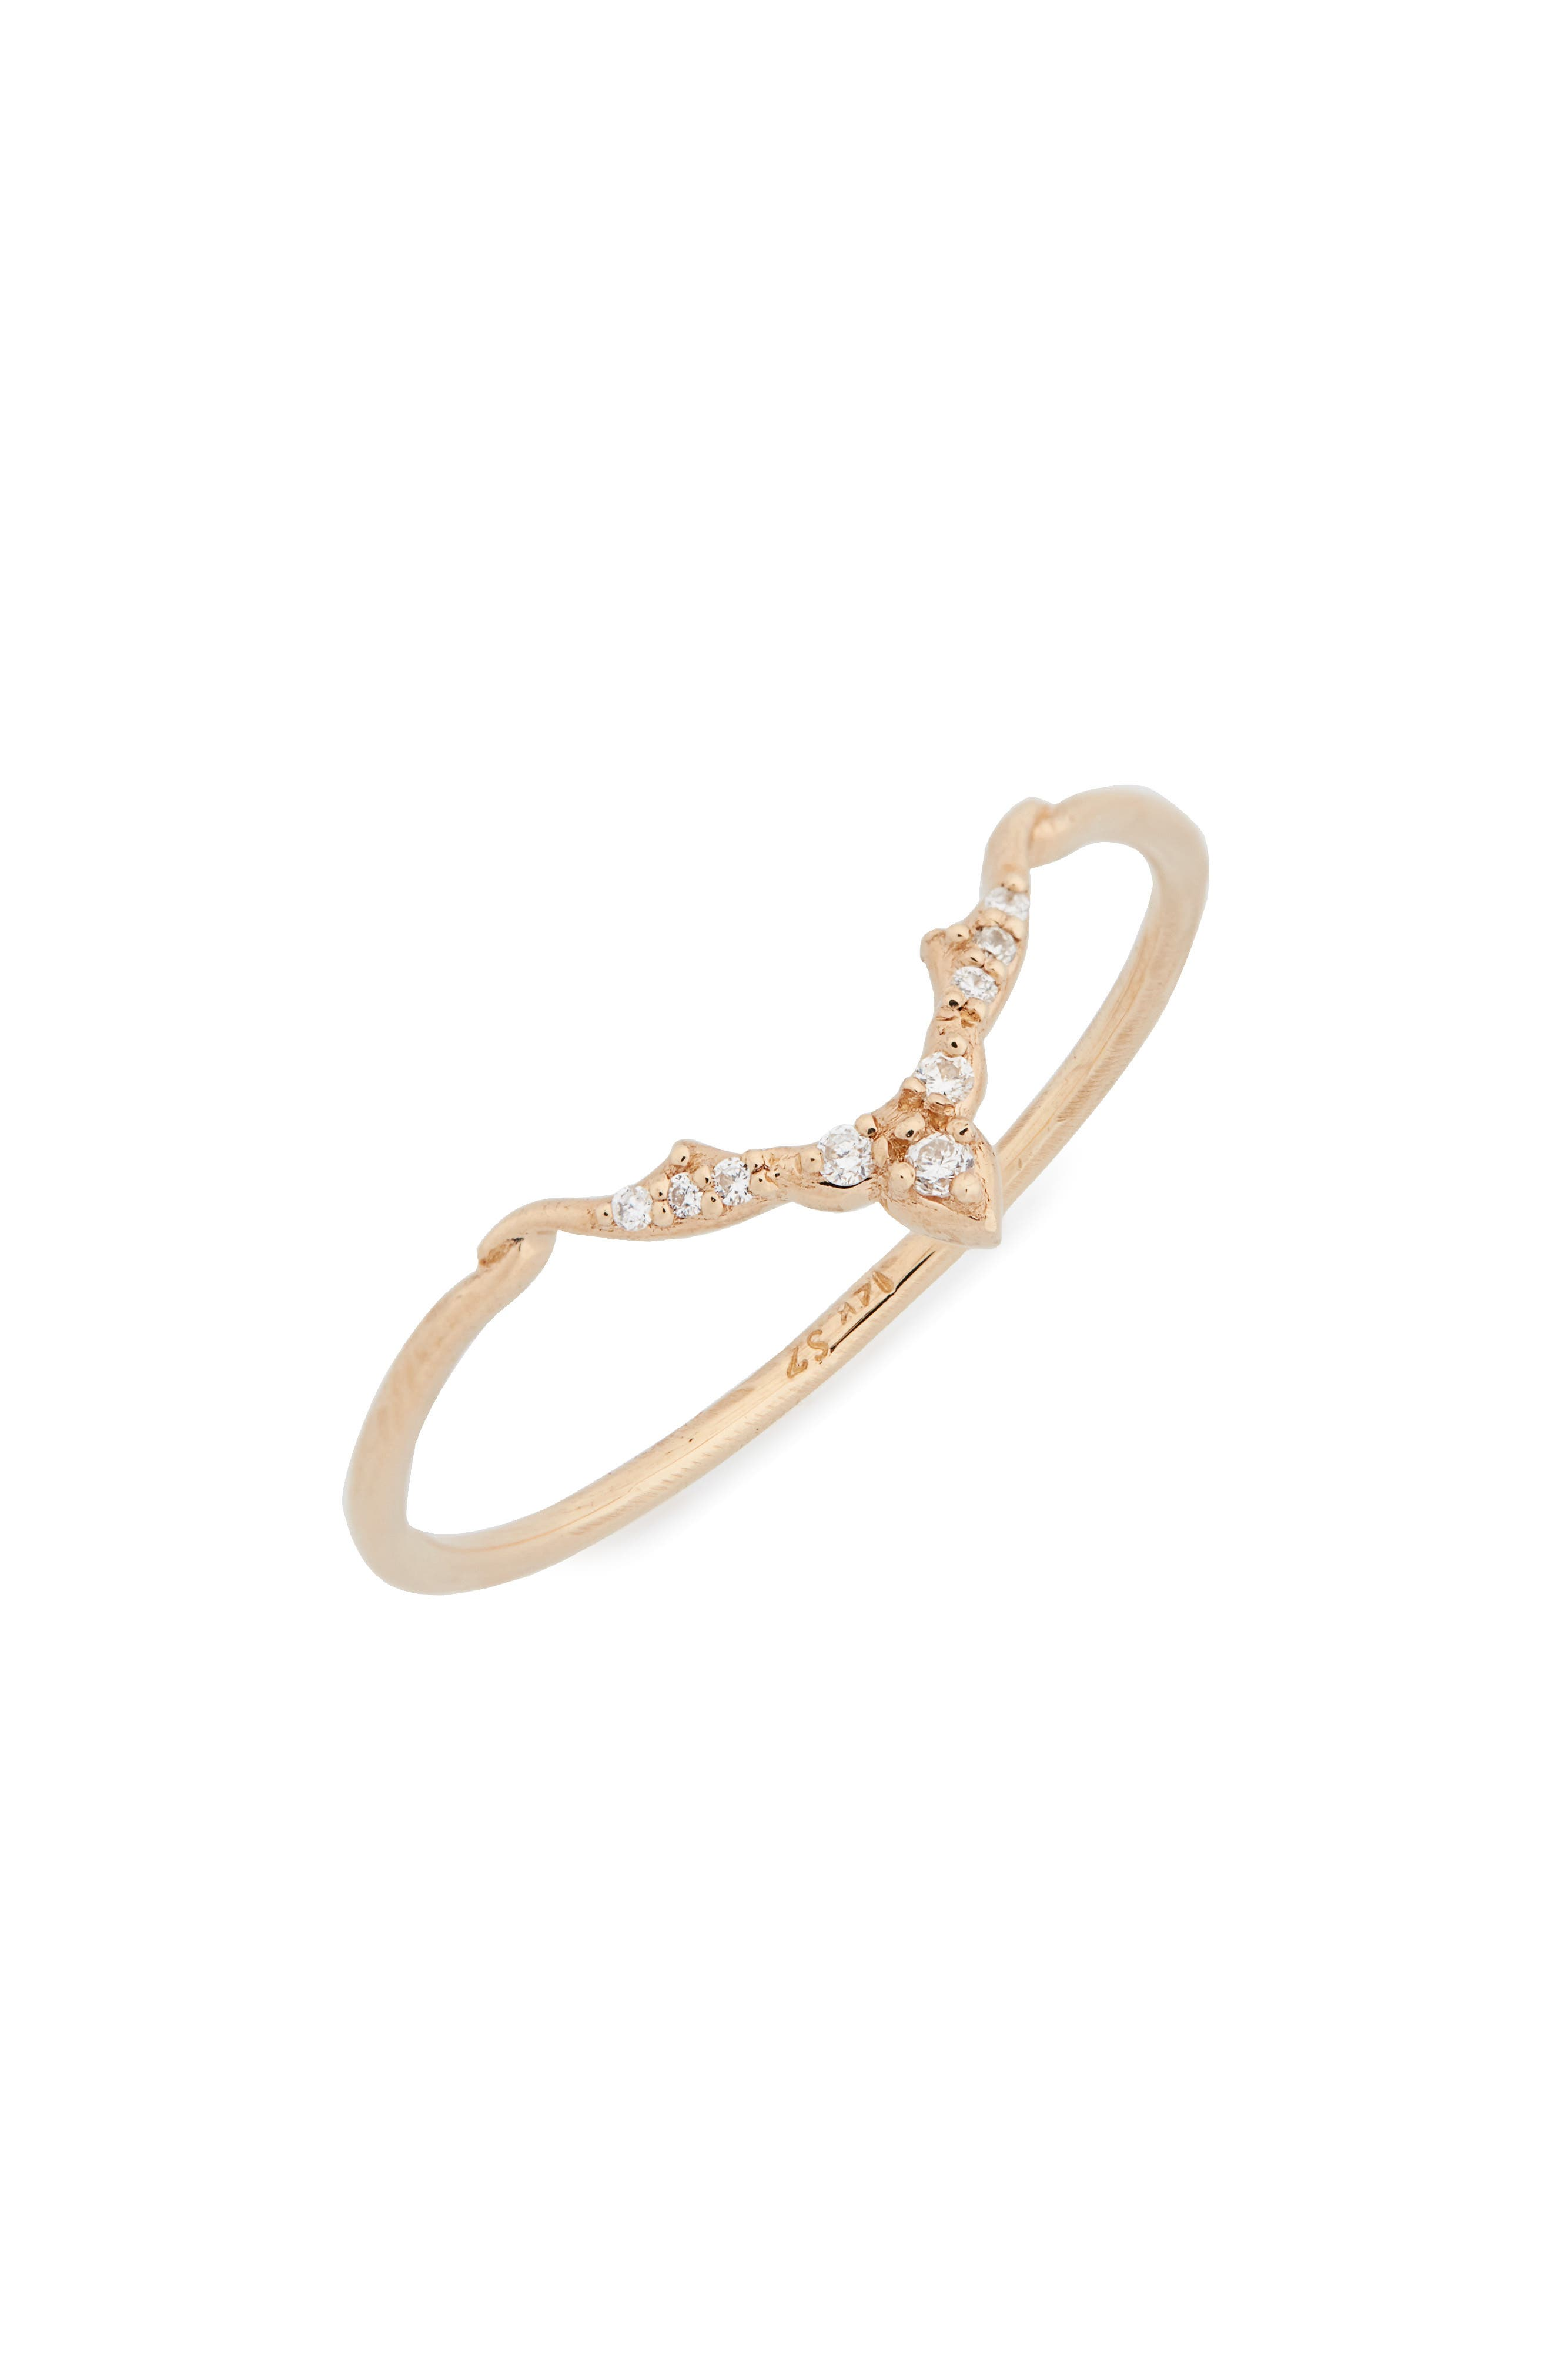 Altair Diamond Ring,                             Main thumbnail 1, color,                             GOLD